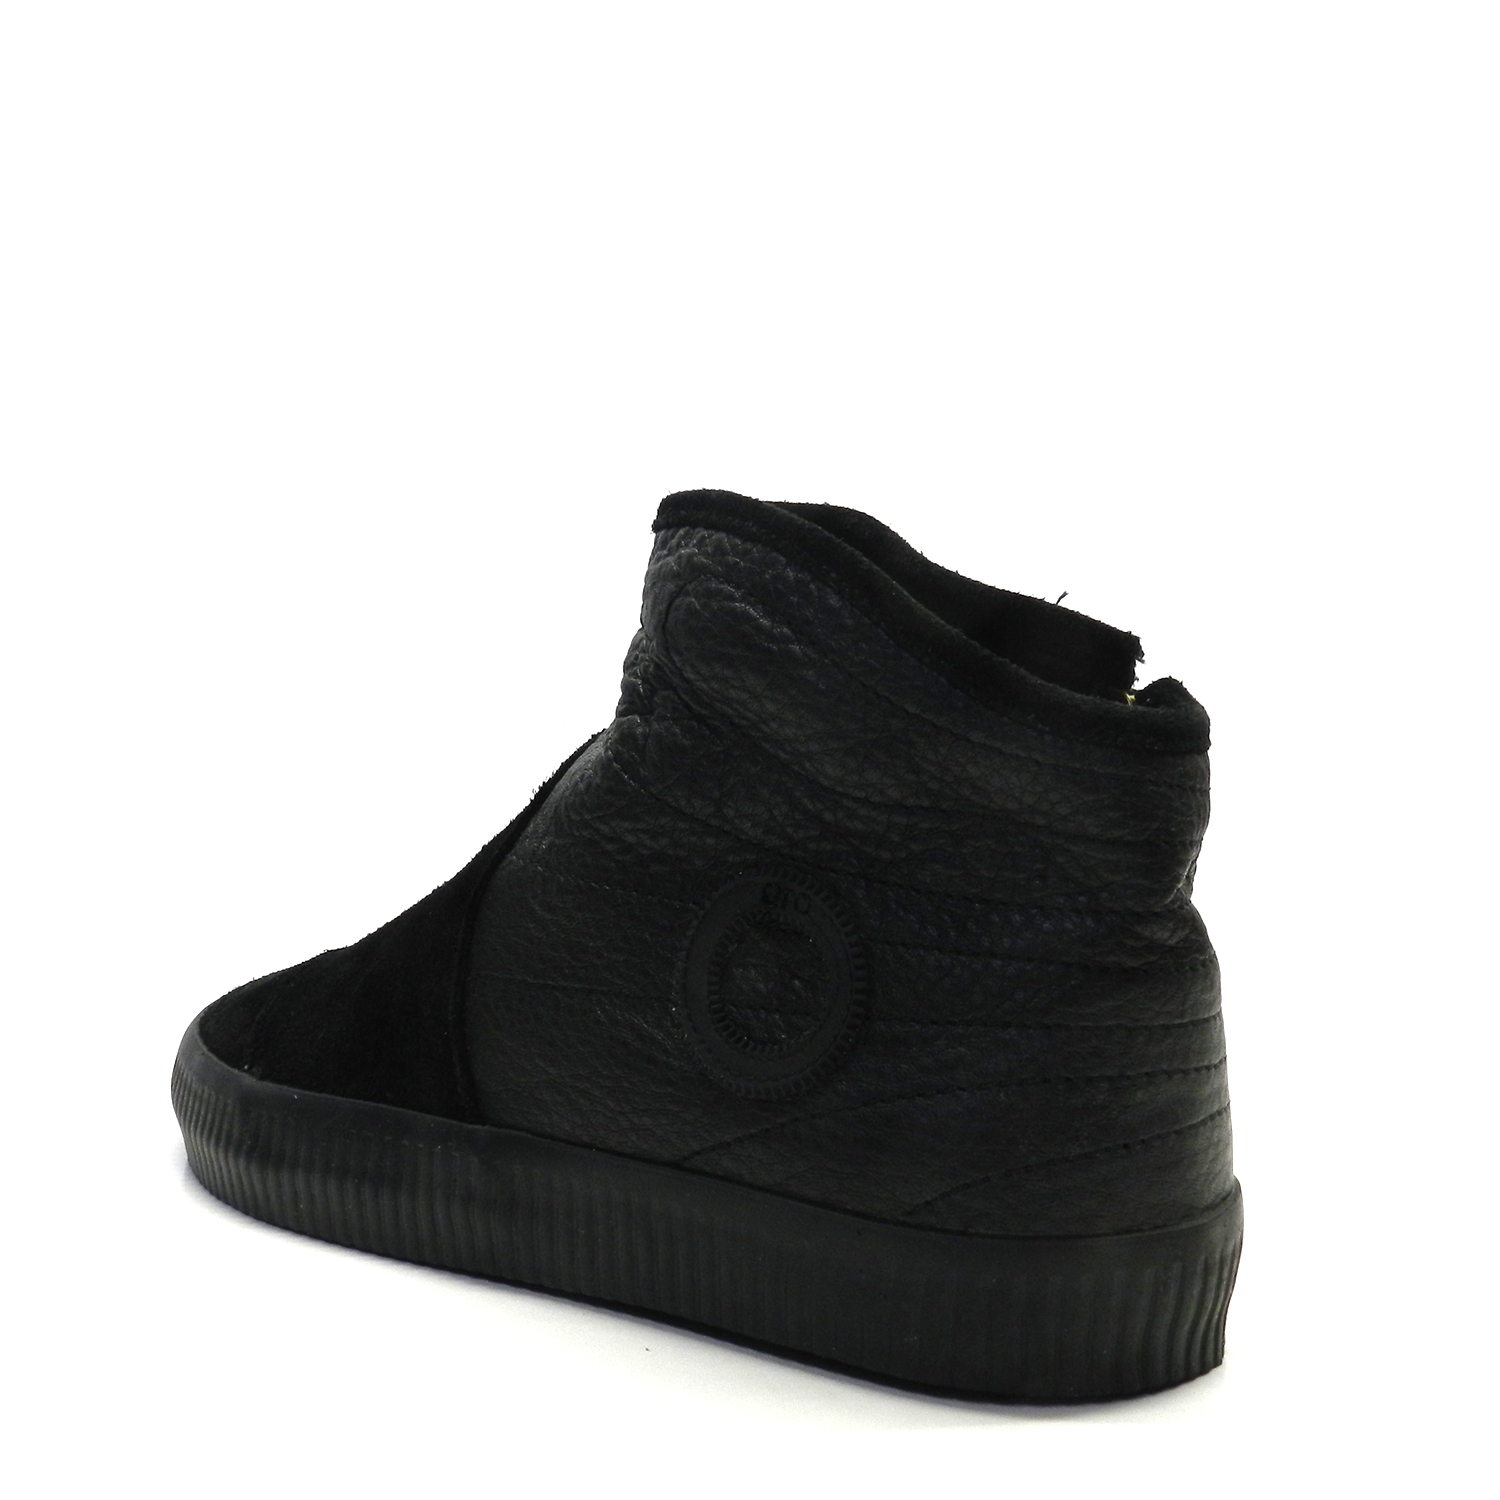 Sneakers - ARO 3380 NOELLE BLACK